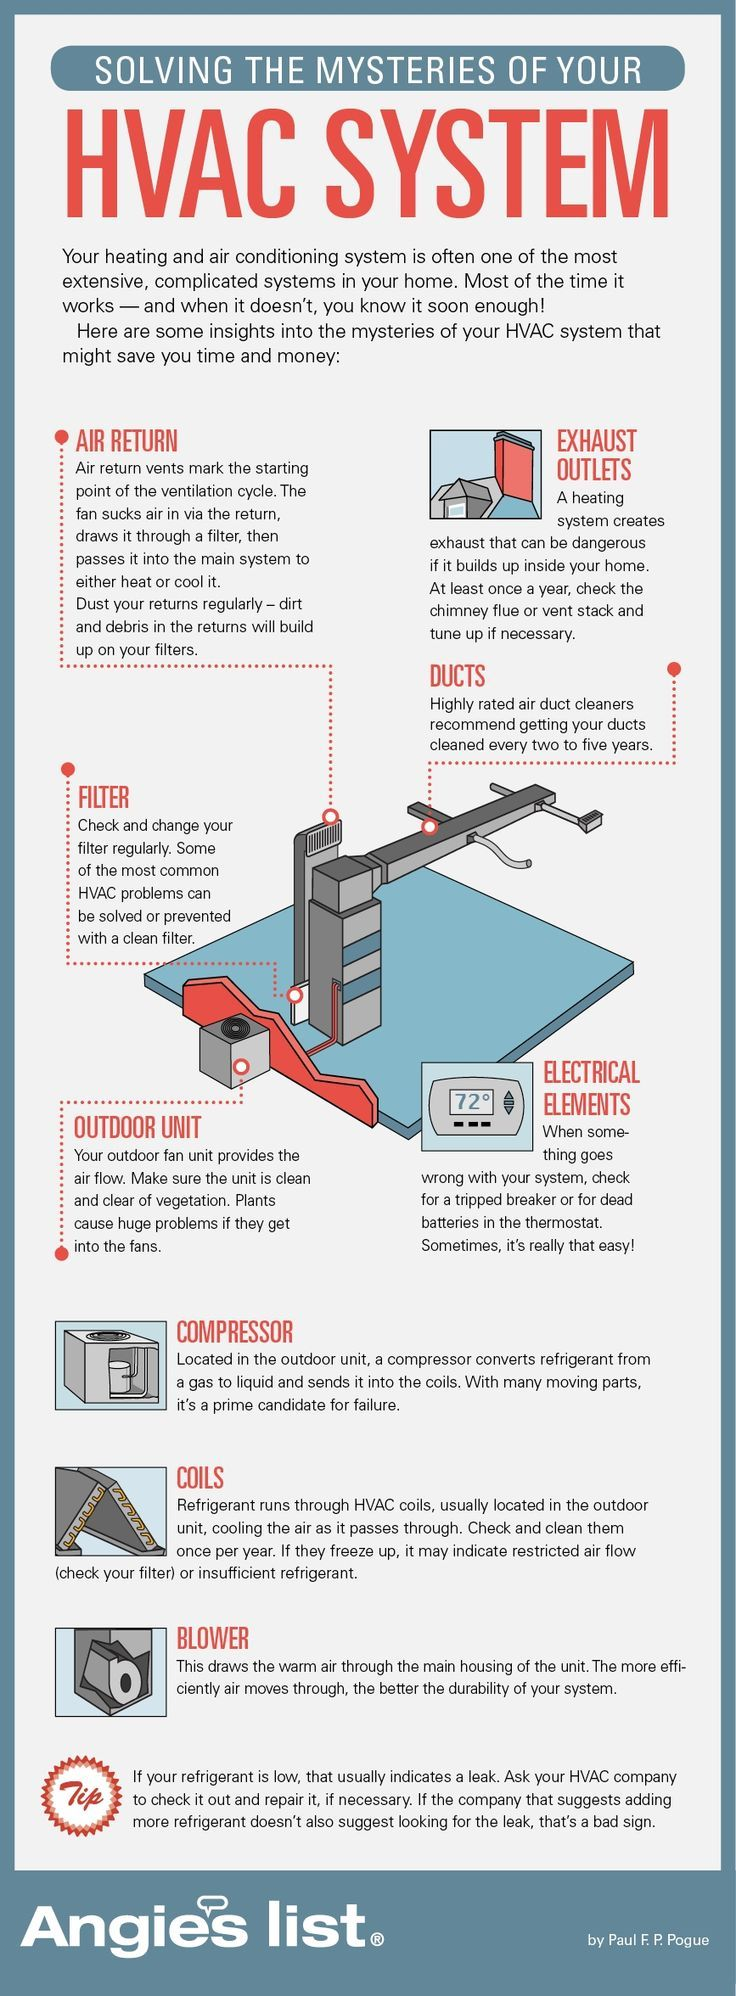 How does your heating and air conditioning system work?   Angie's List